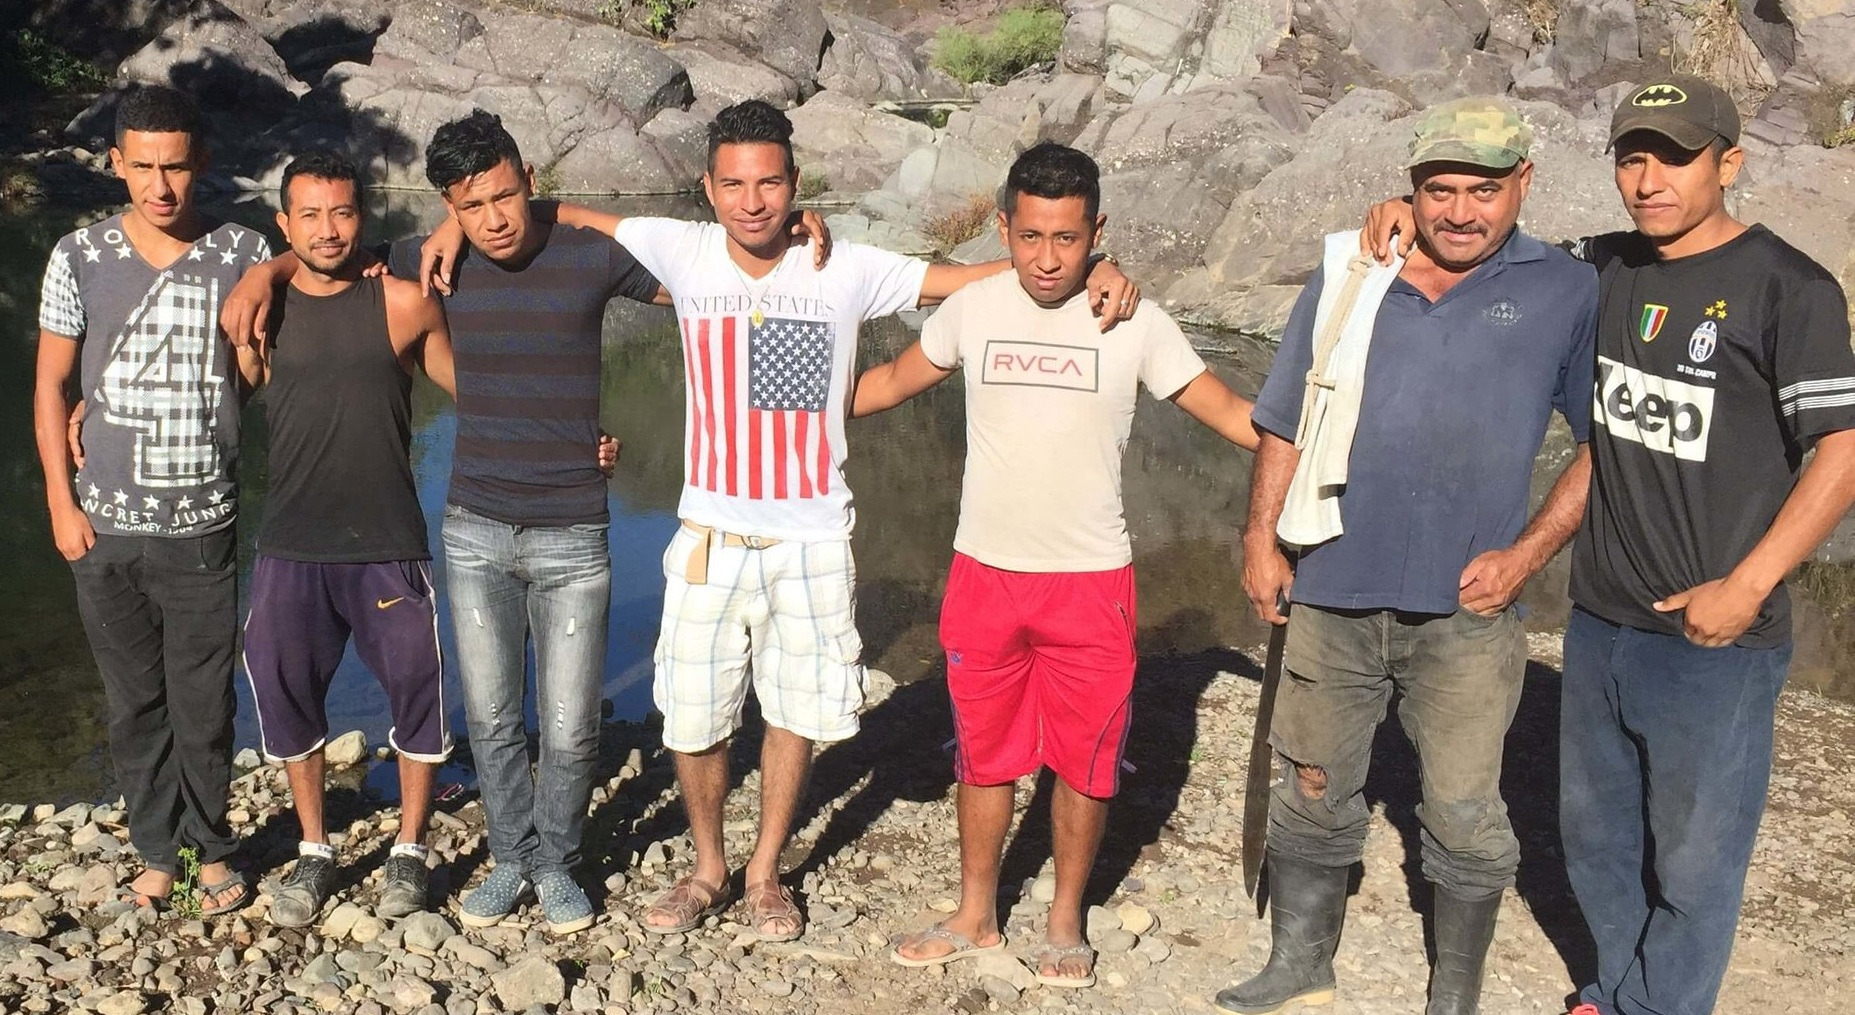 These men took me down to their community water hole before one of our newest groups gathered for the first time near Quesada, Guatemala. After talking about their ideas for pumping water up to the community, I snapped this picture and asked the young man with the US flag on his shirt a question.